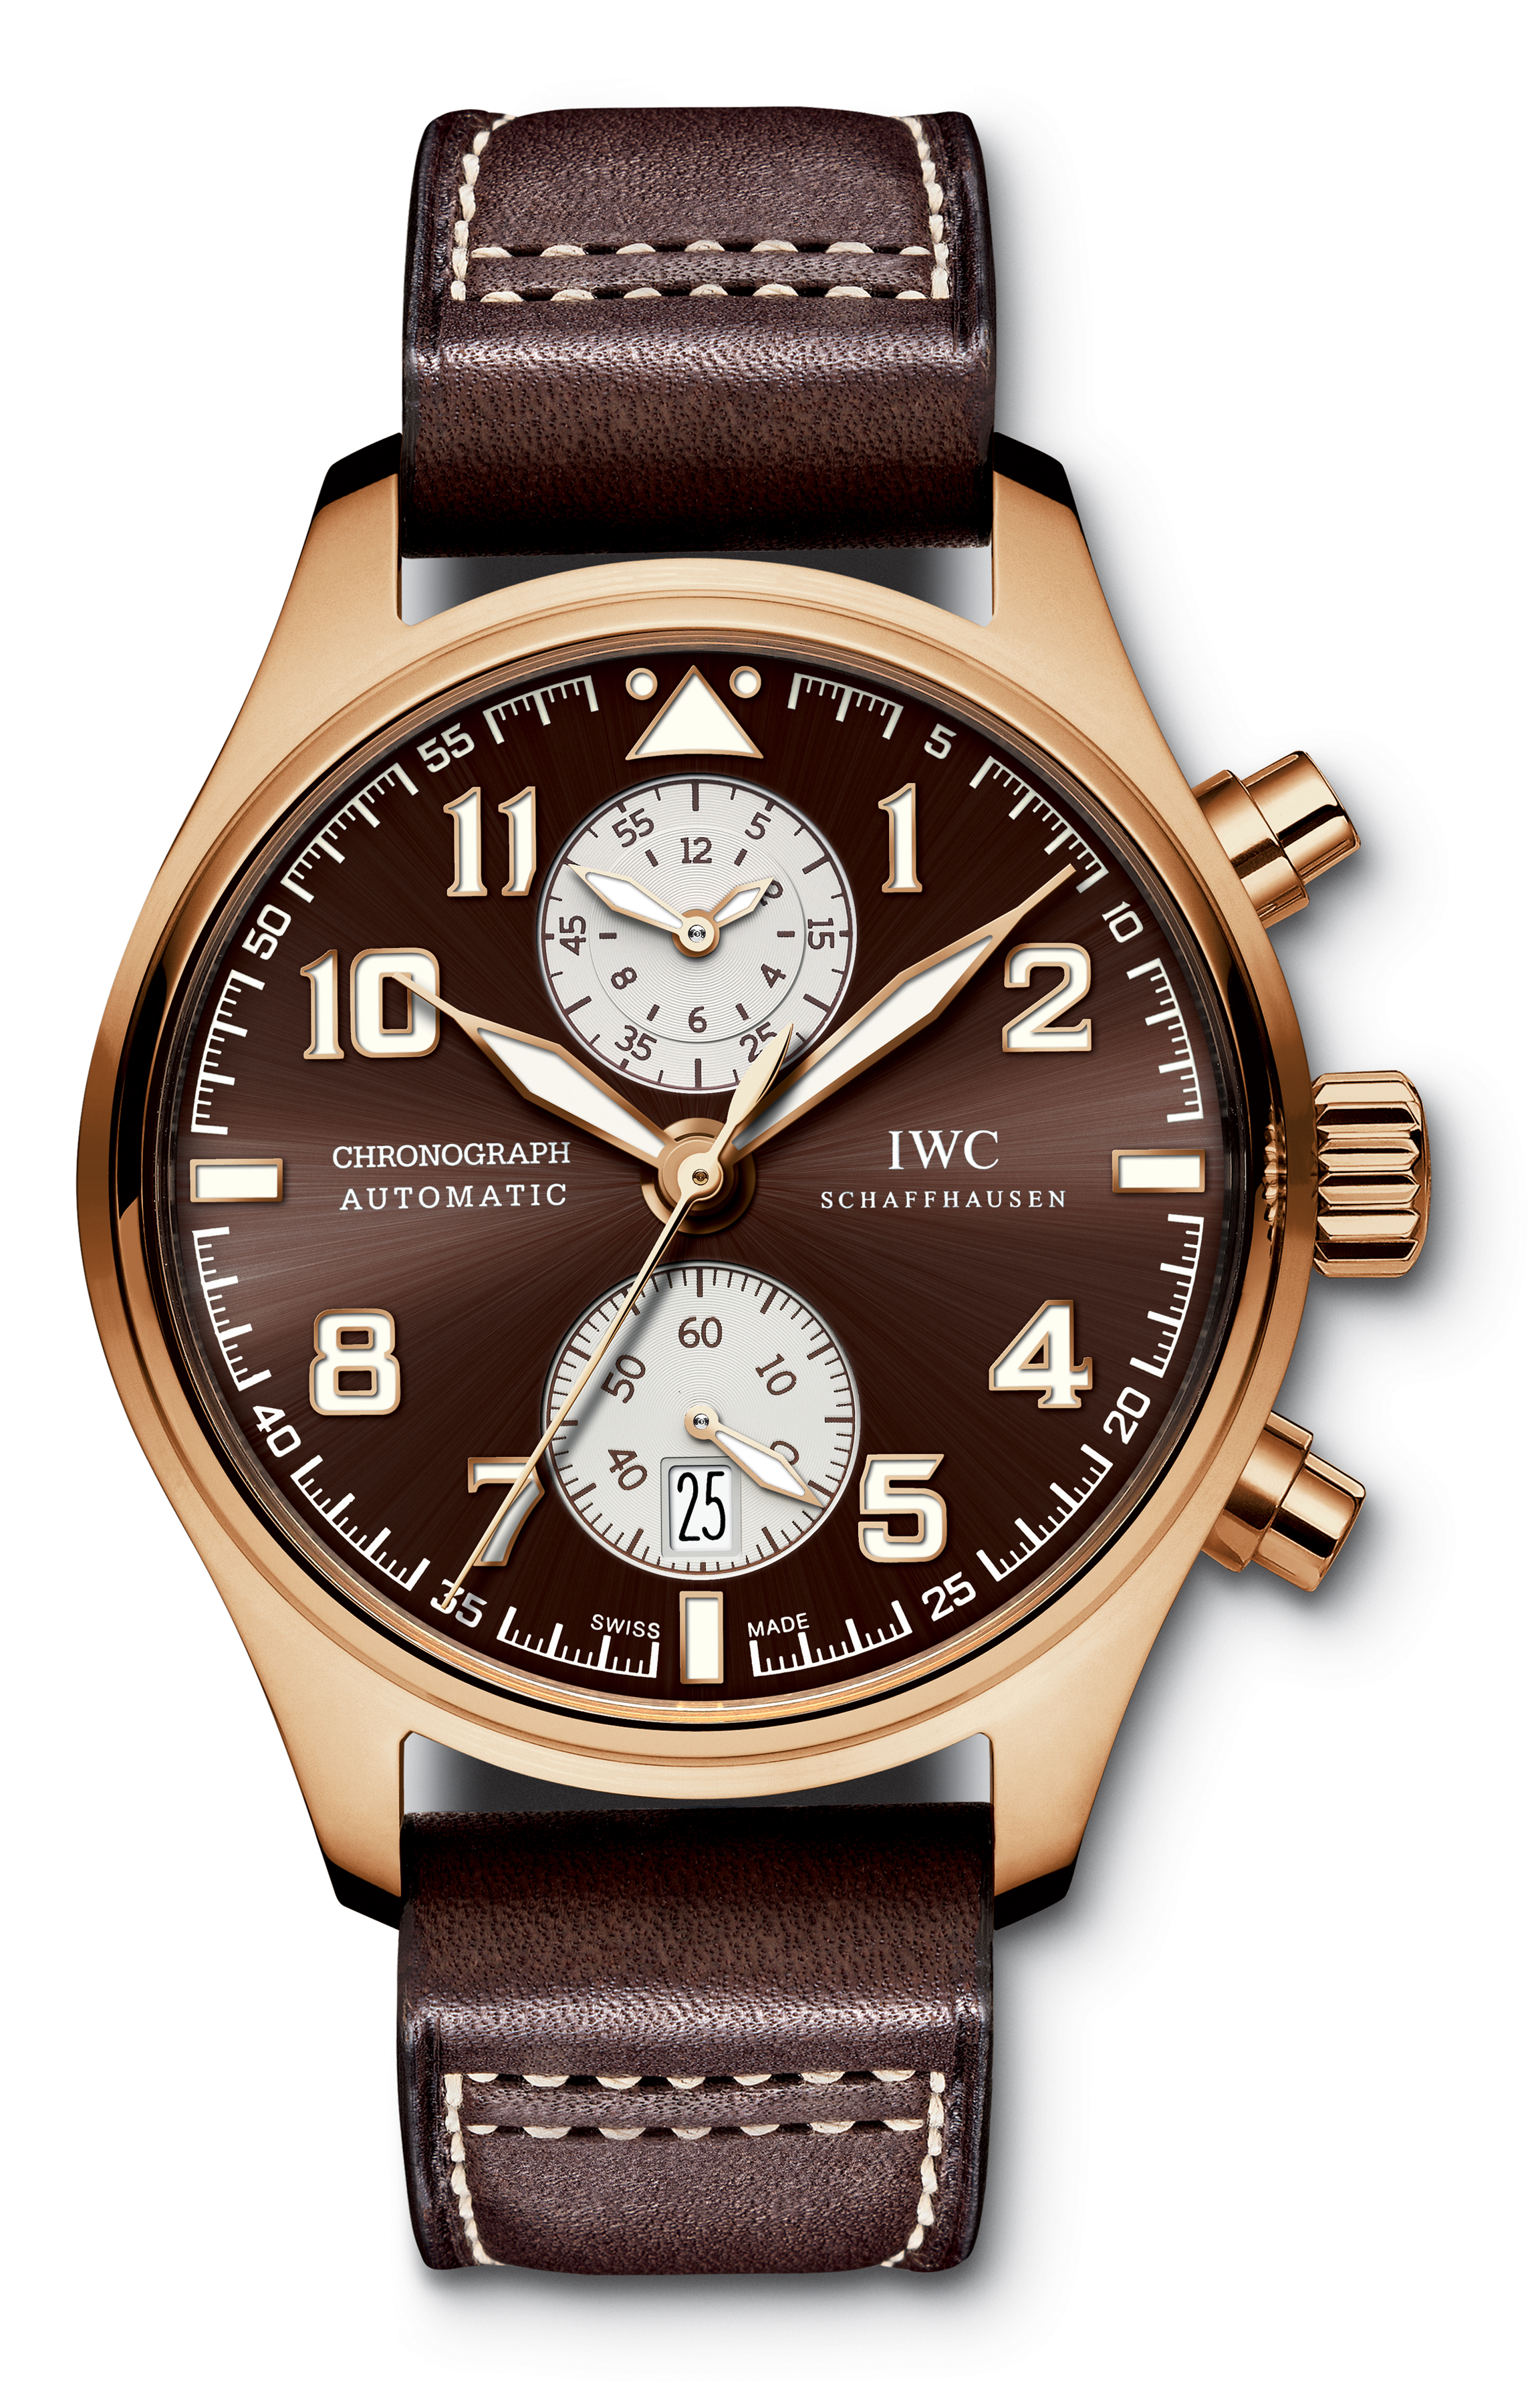 hands models pricing ixlib davinci on iwc calendar chronograph for and perpetual da in with both the updated chrono rails gold steel watches articles vinci